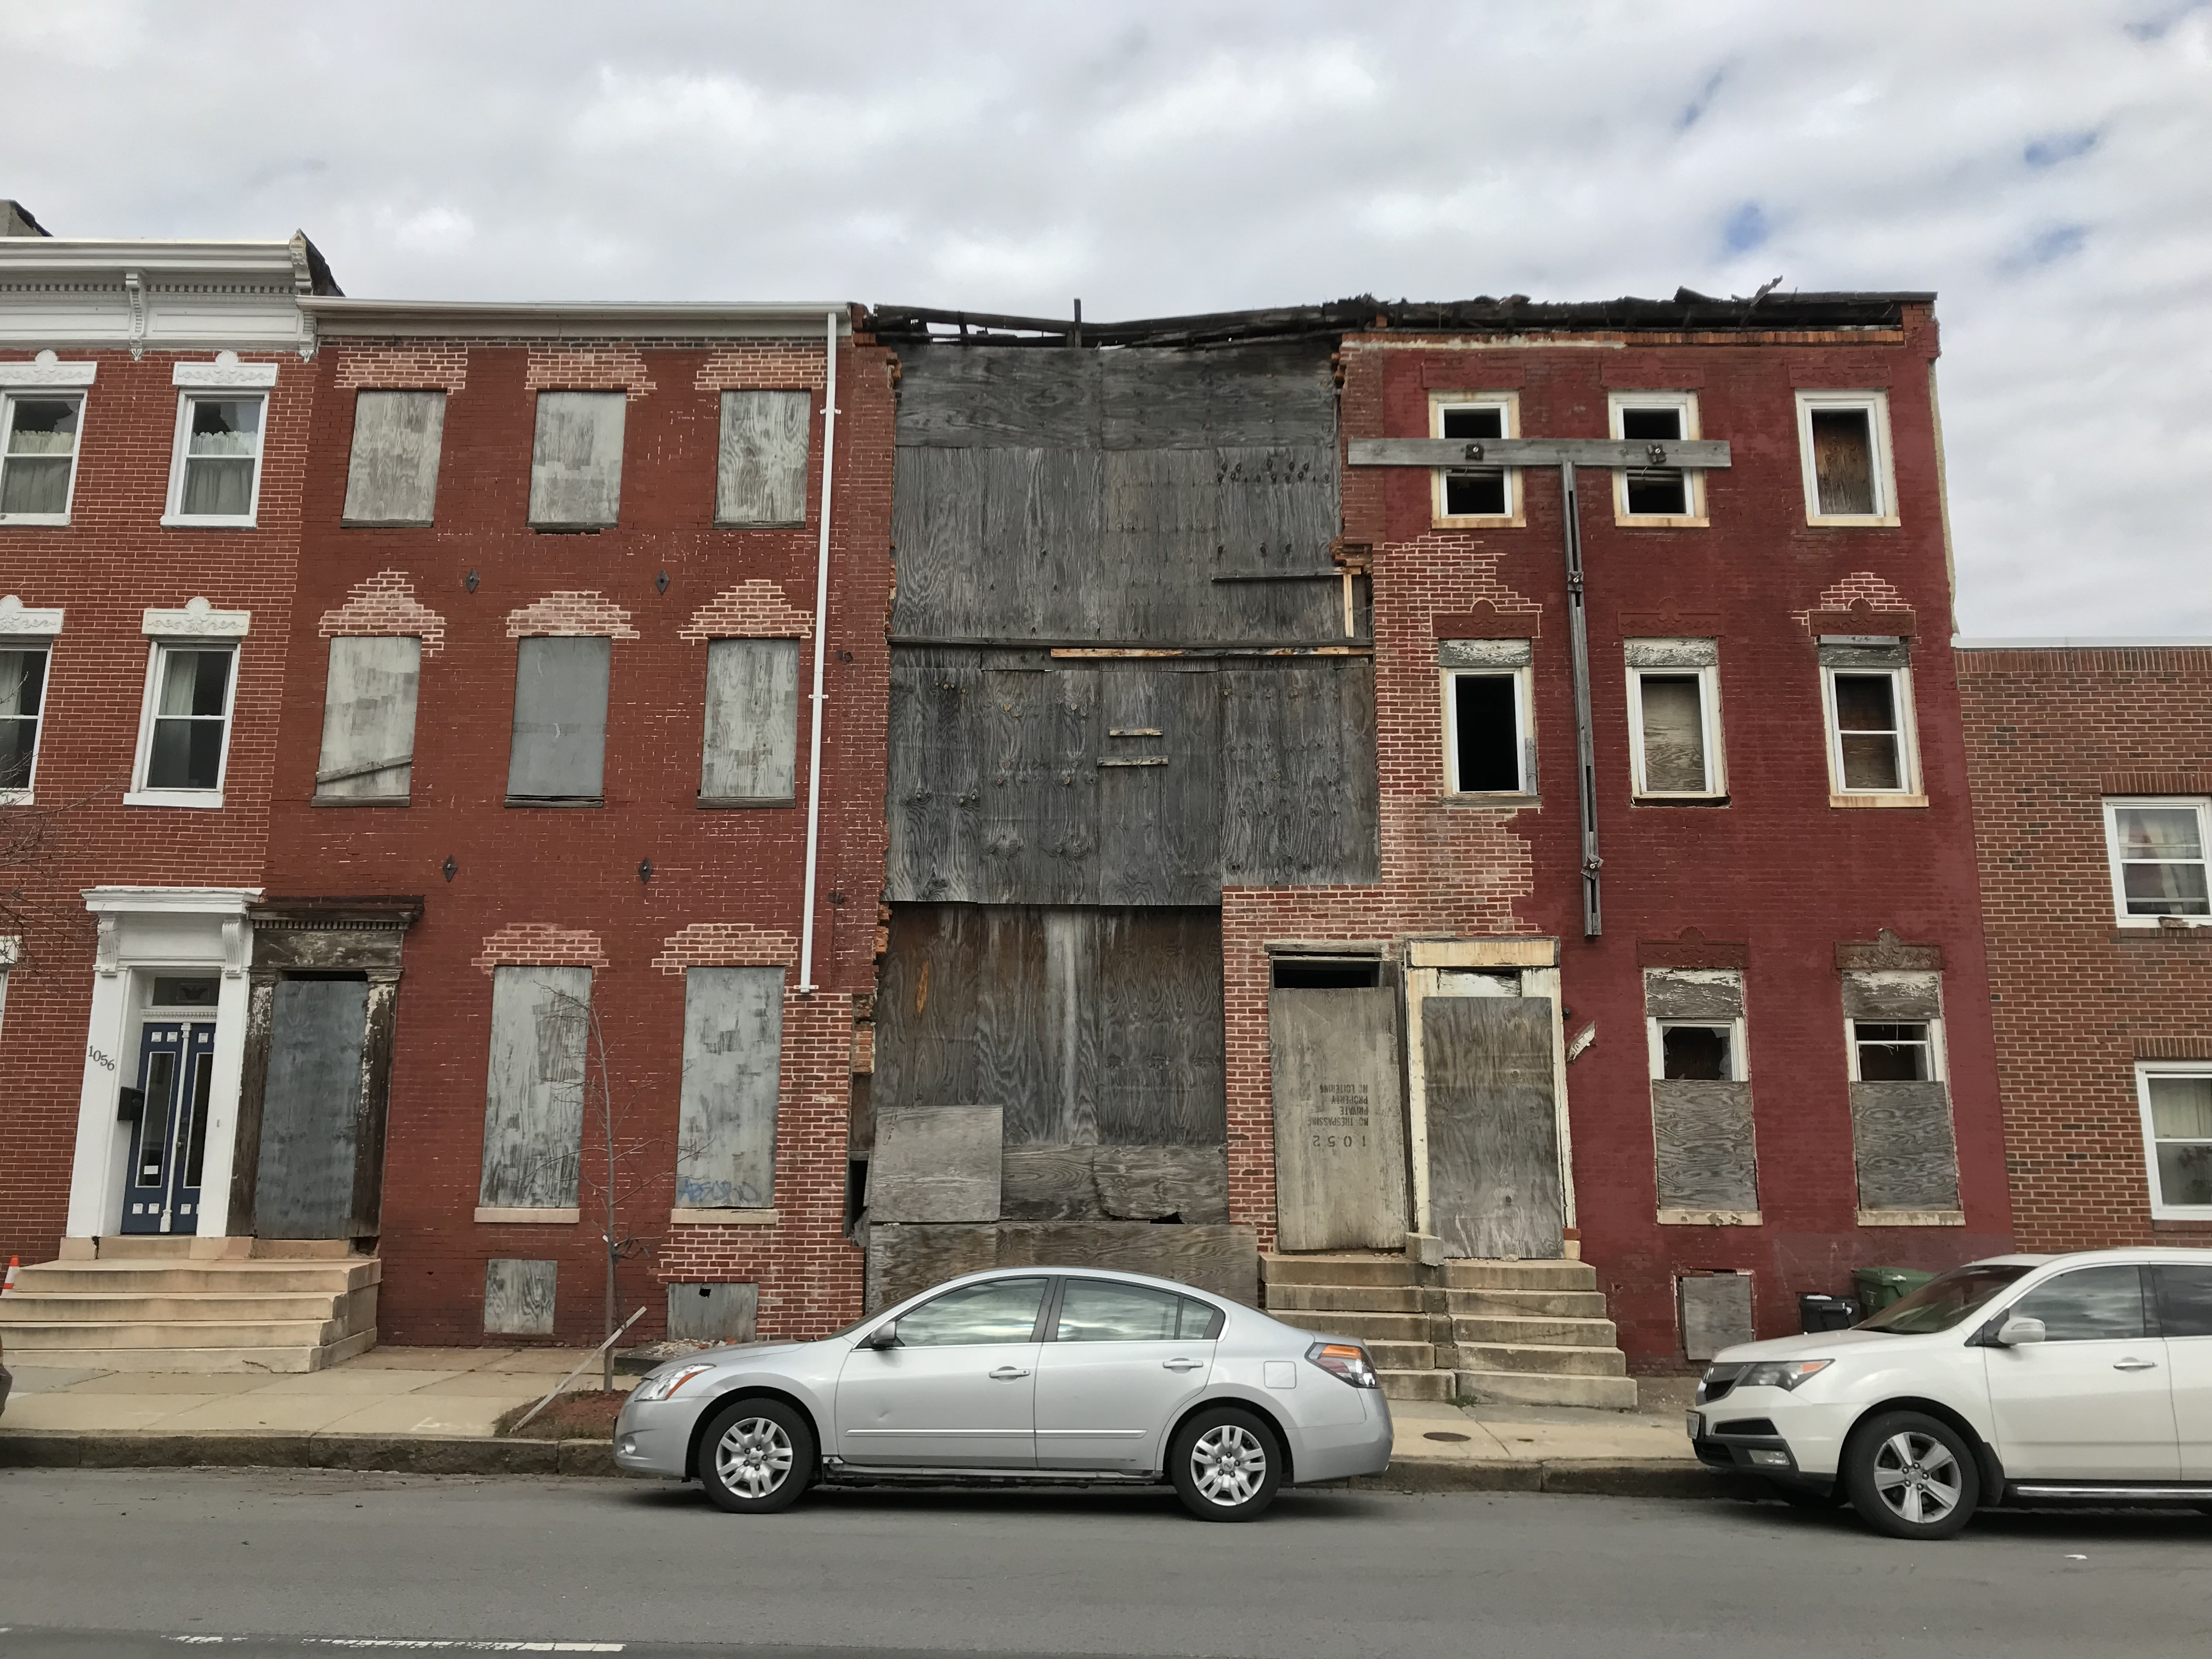 Vacant rowhouses, 1050-1056 w. fayette street, baltimore, md 21223 photo